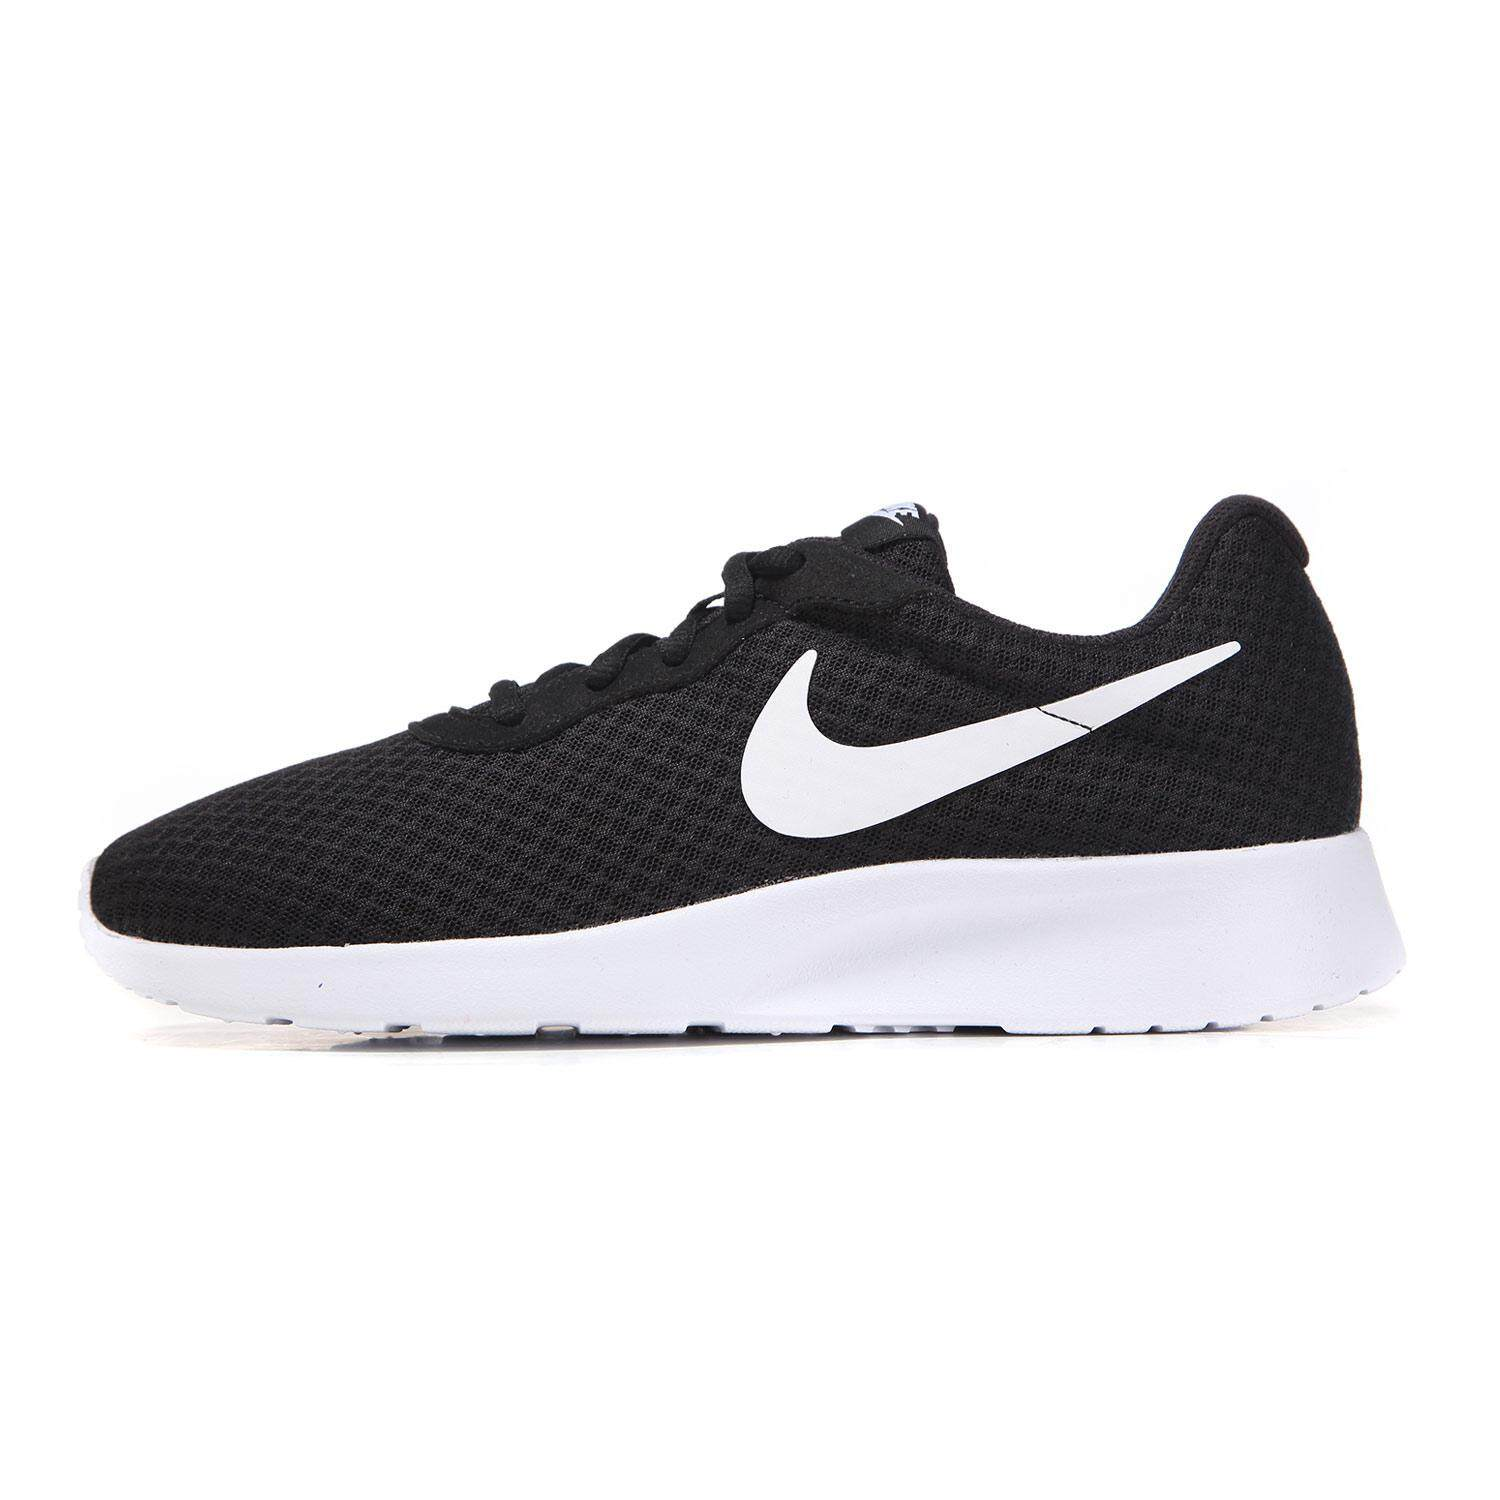 7480965b4fef9 NIKE TANJUN men s shoes women s shoes sports casual light mesh running shoes  812654-010 812654